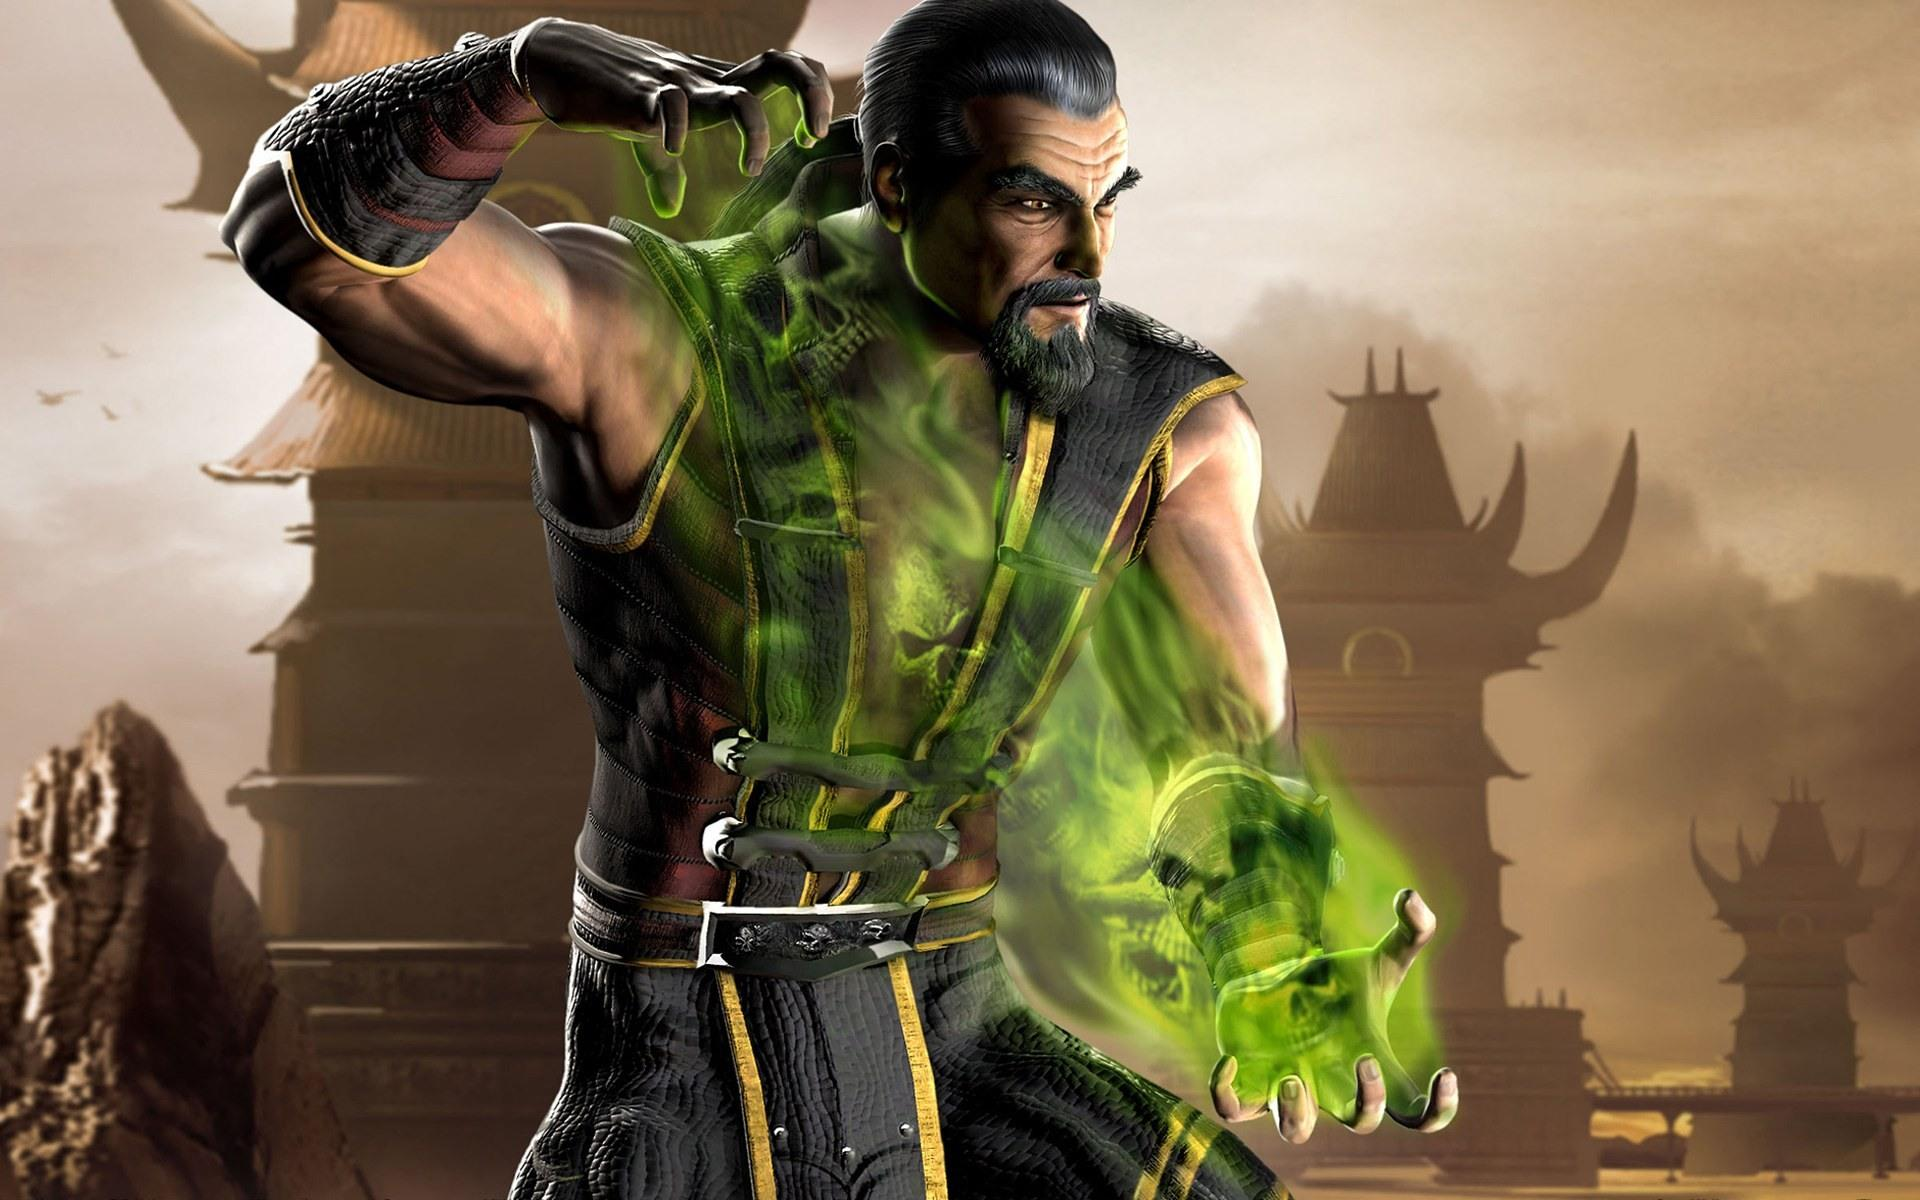 Mortal Kombat: Shang Tsung Story Trailer – Collector's Edition Update